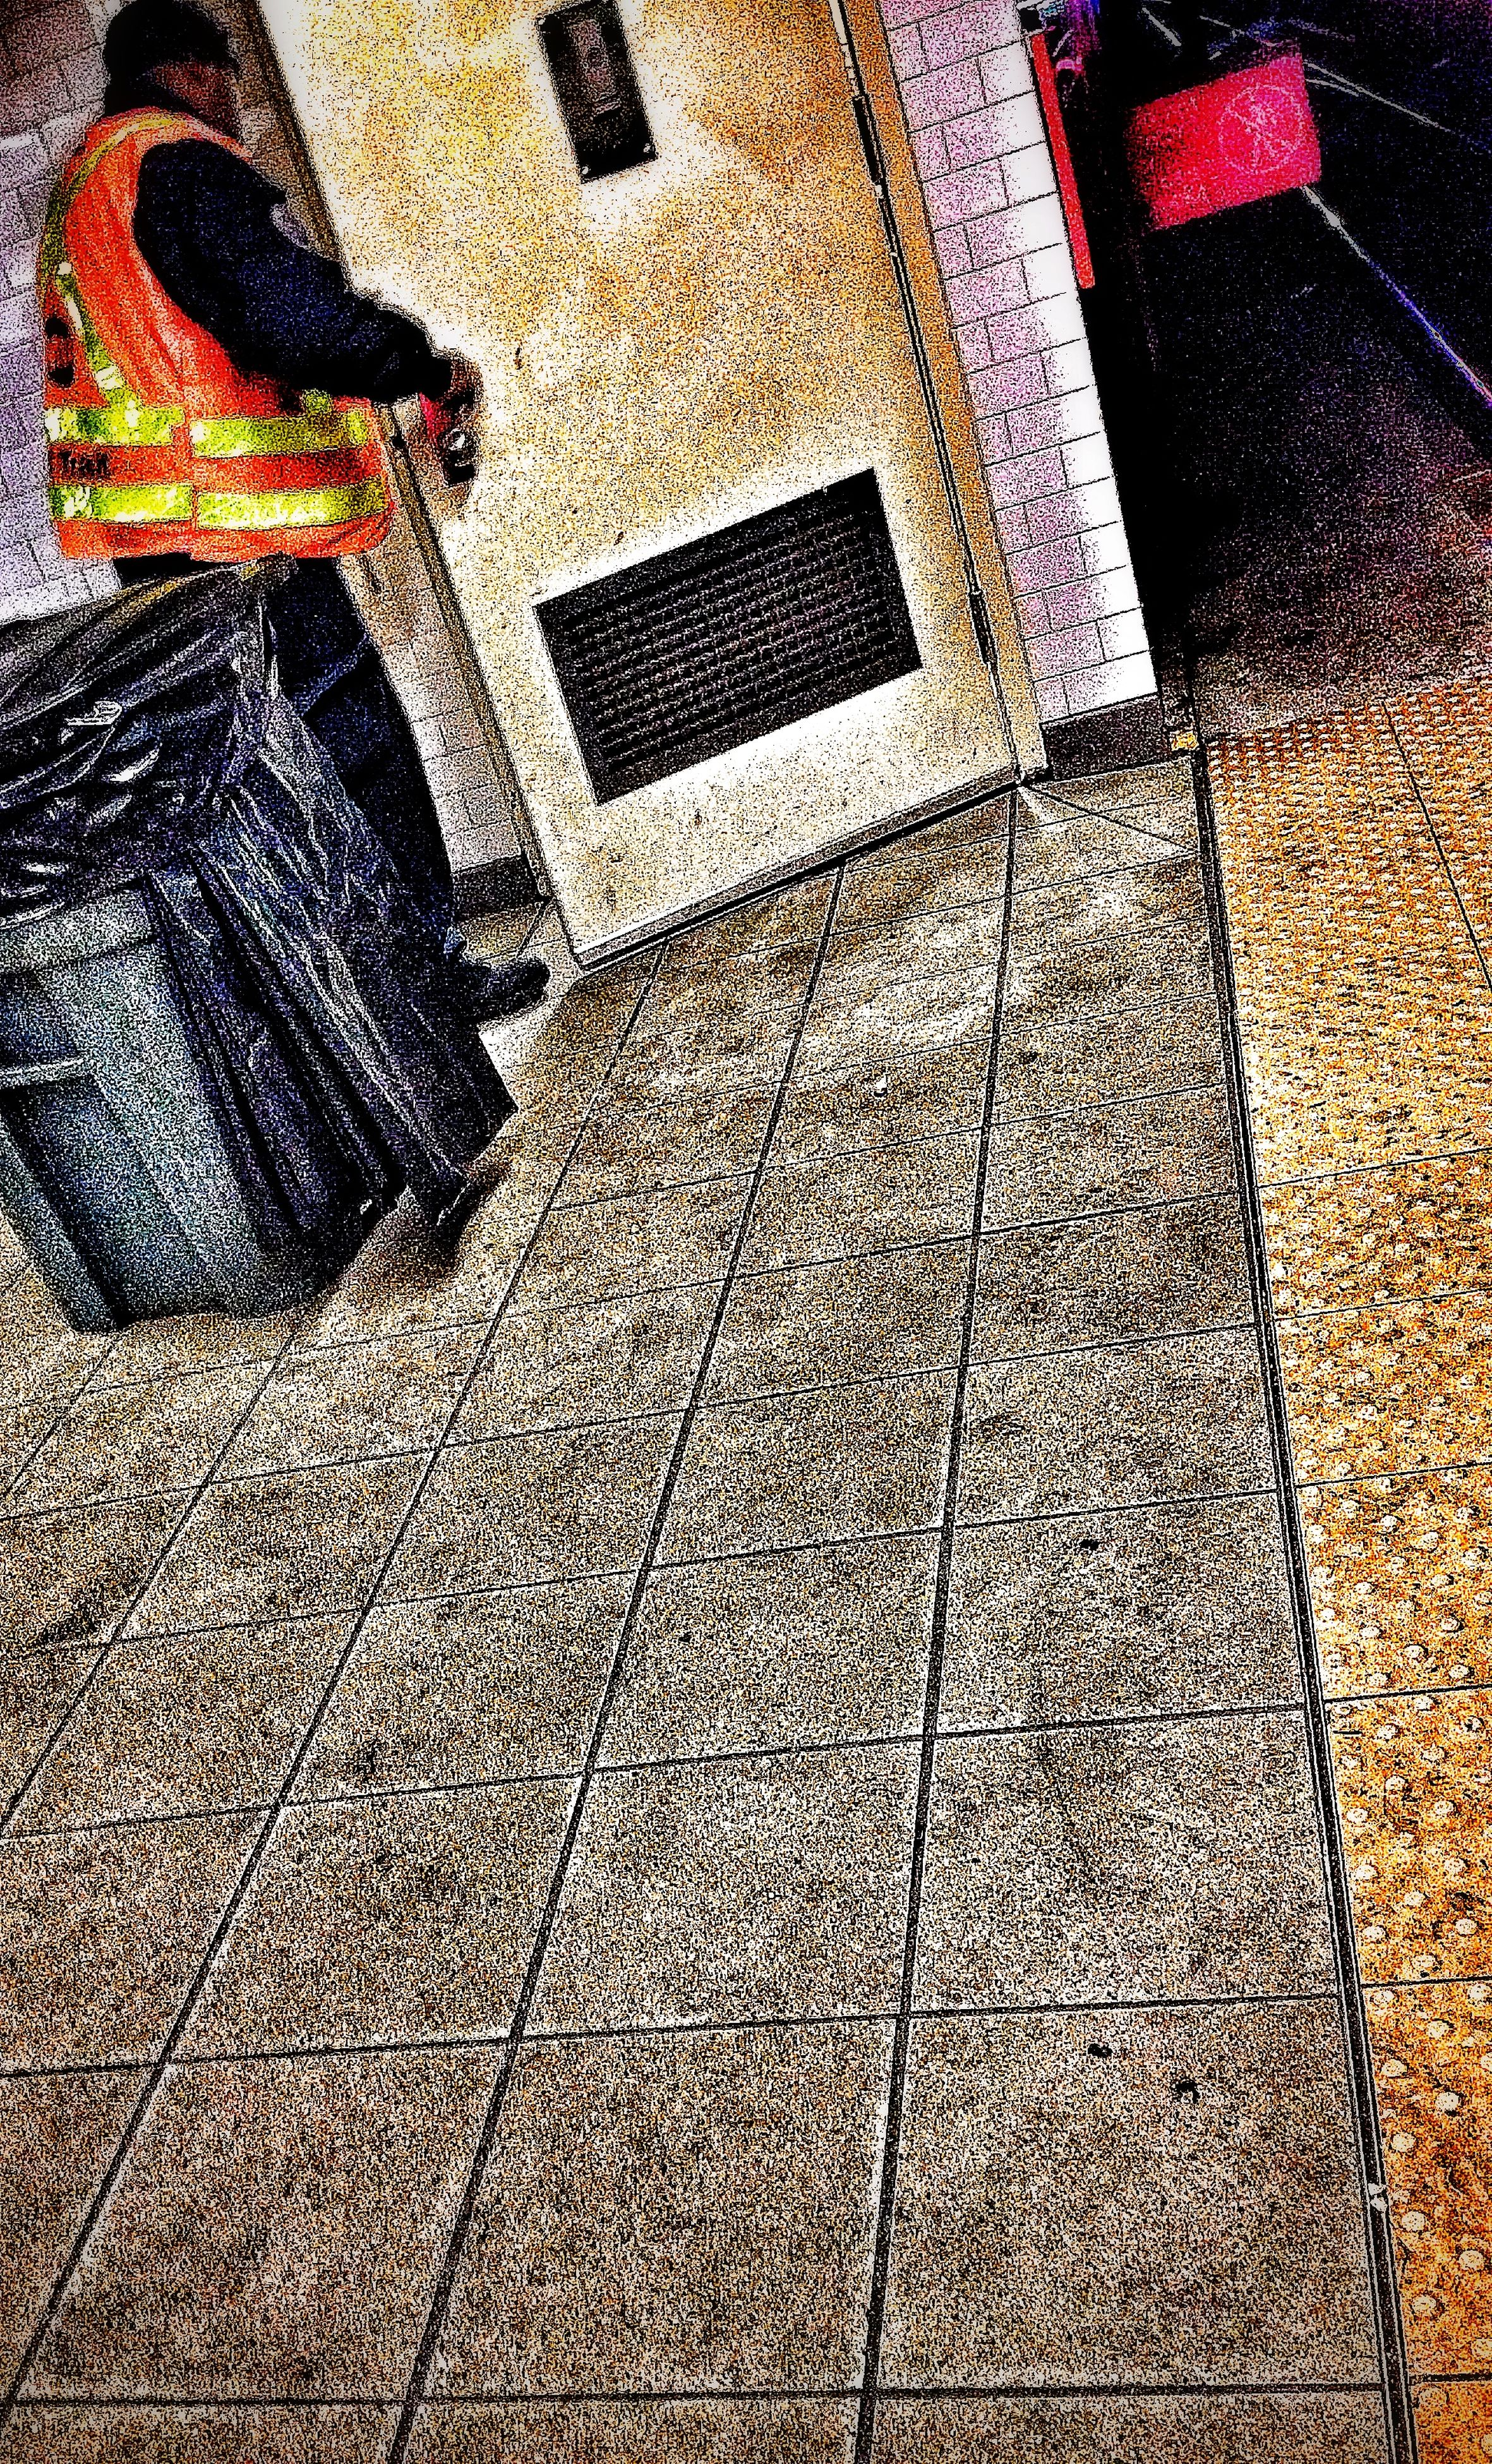 high angle view, street, pattern, lifestyles, standing, sidewalk, shadow, tiled floor, flooring, shoe, low section, leisure activity, paving stone, cobblestone, wall - building feature, outdoors, textured, architecture